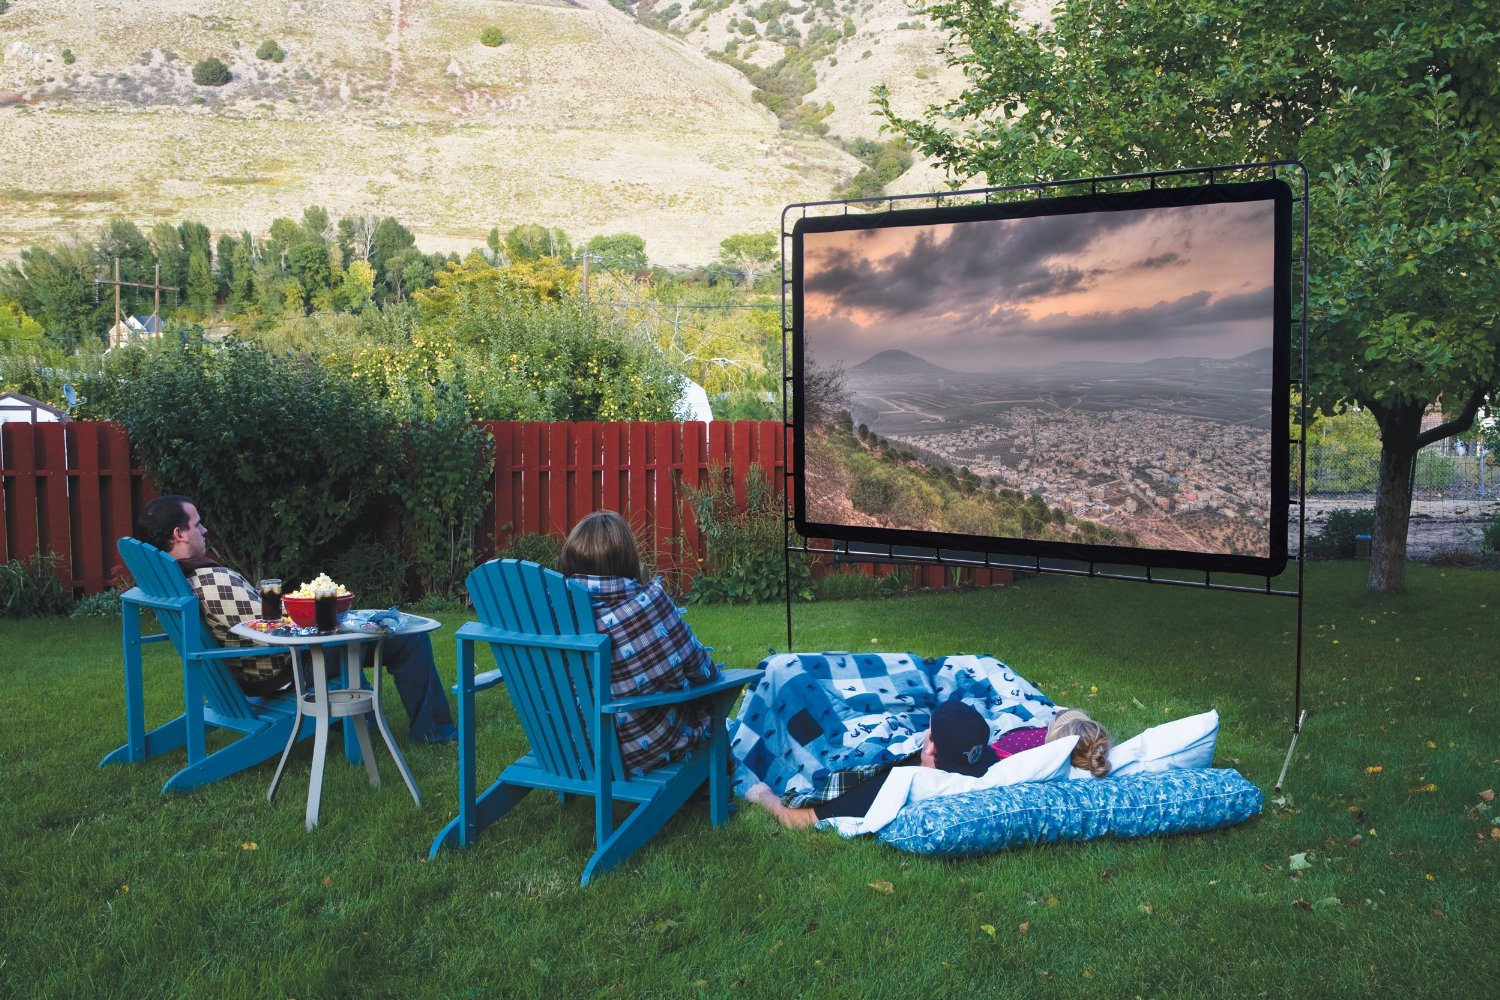 outdoor rear projection screen 1-16 of 165 results for outdoor rear projector screen amazon's choice for outdoor rear projector used for front or rear projection great for outdoor movies.